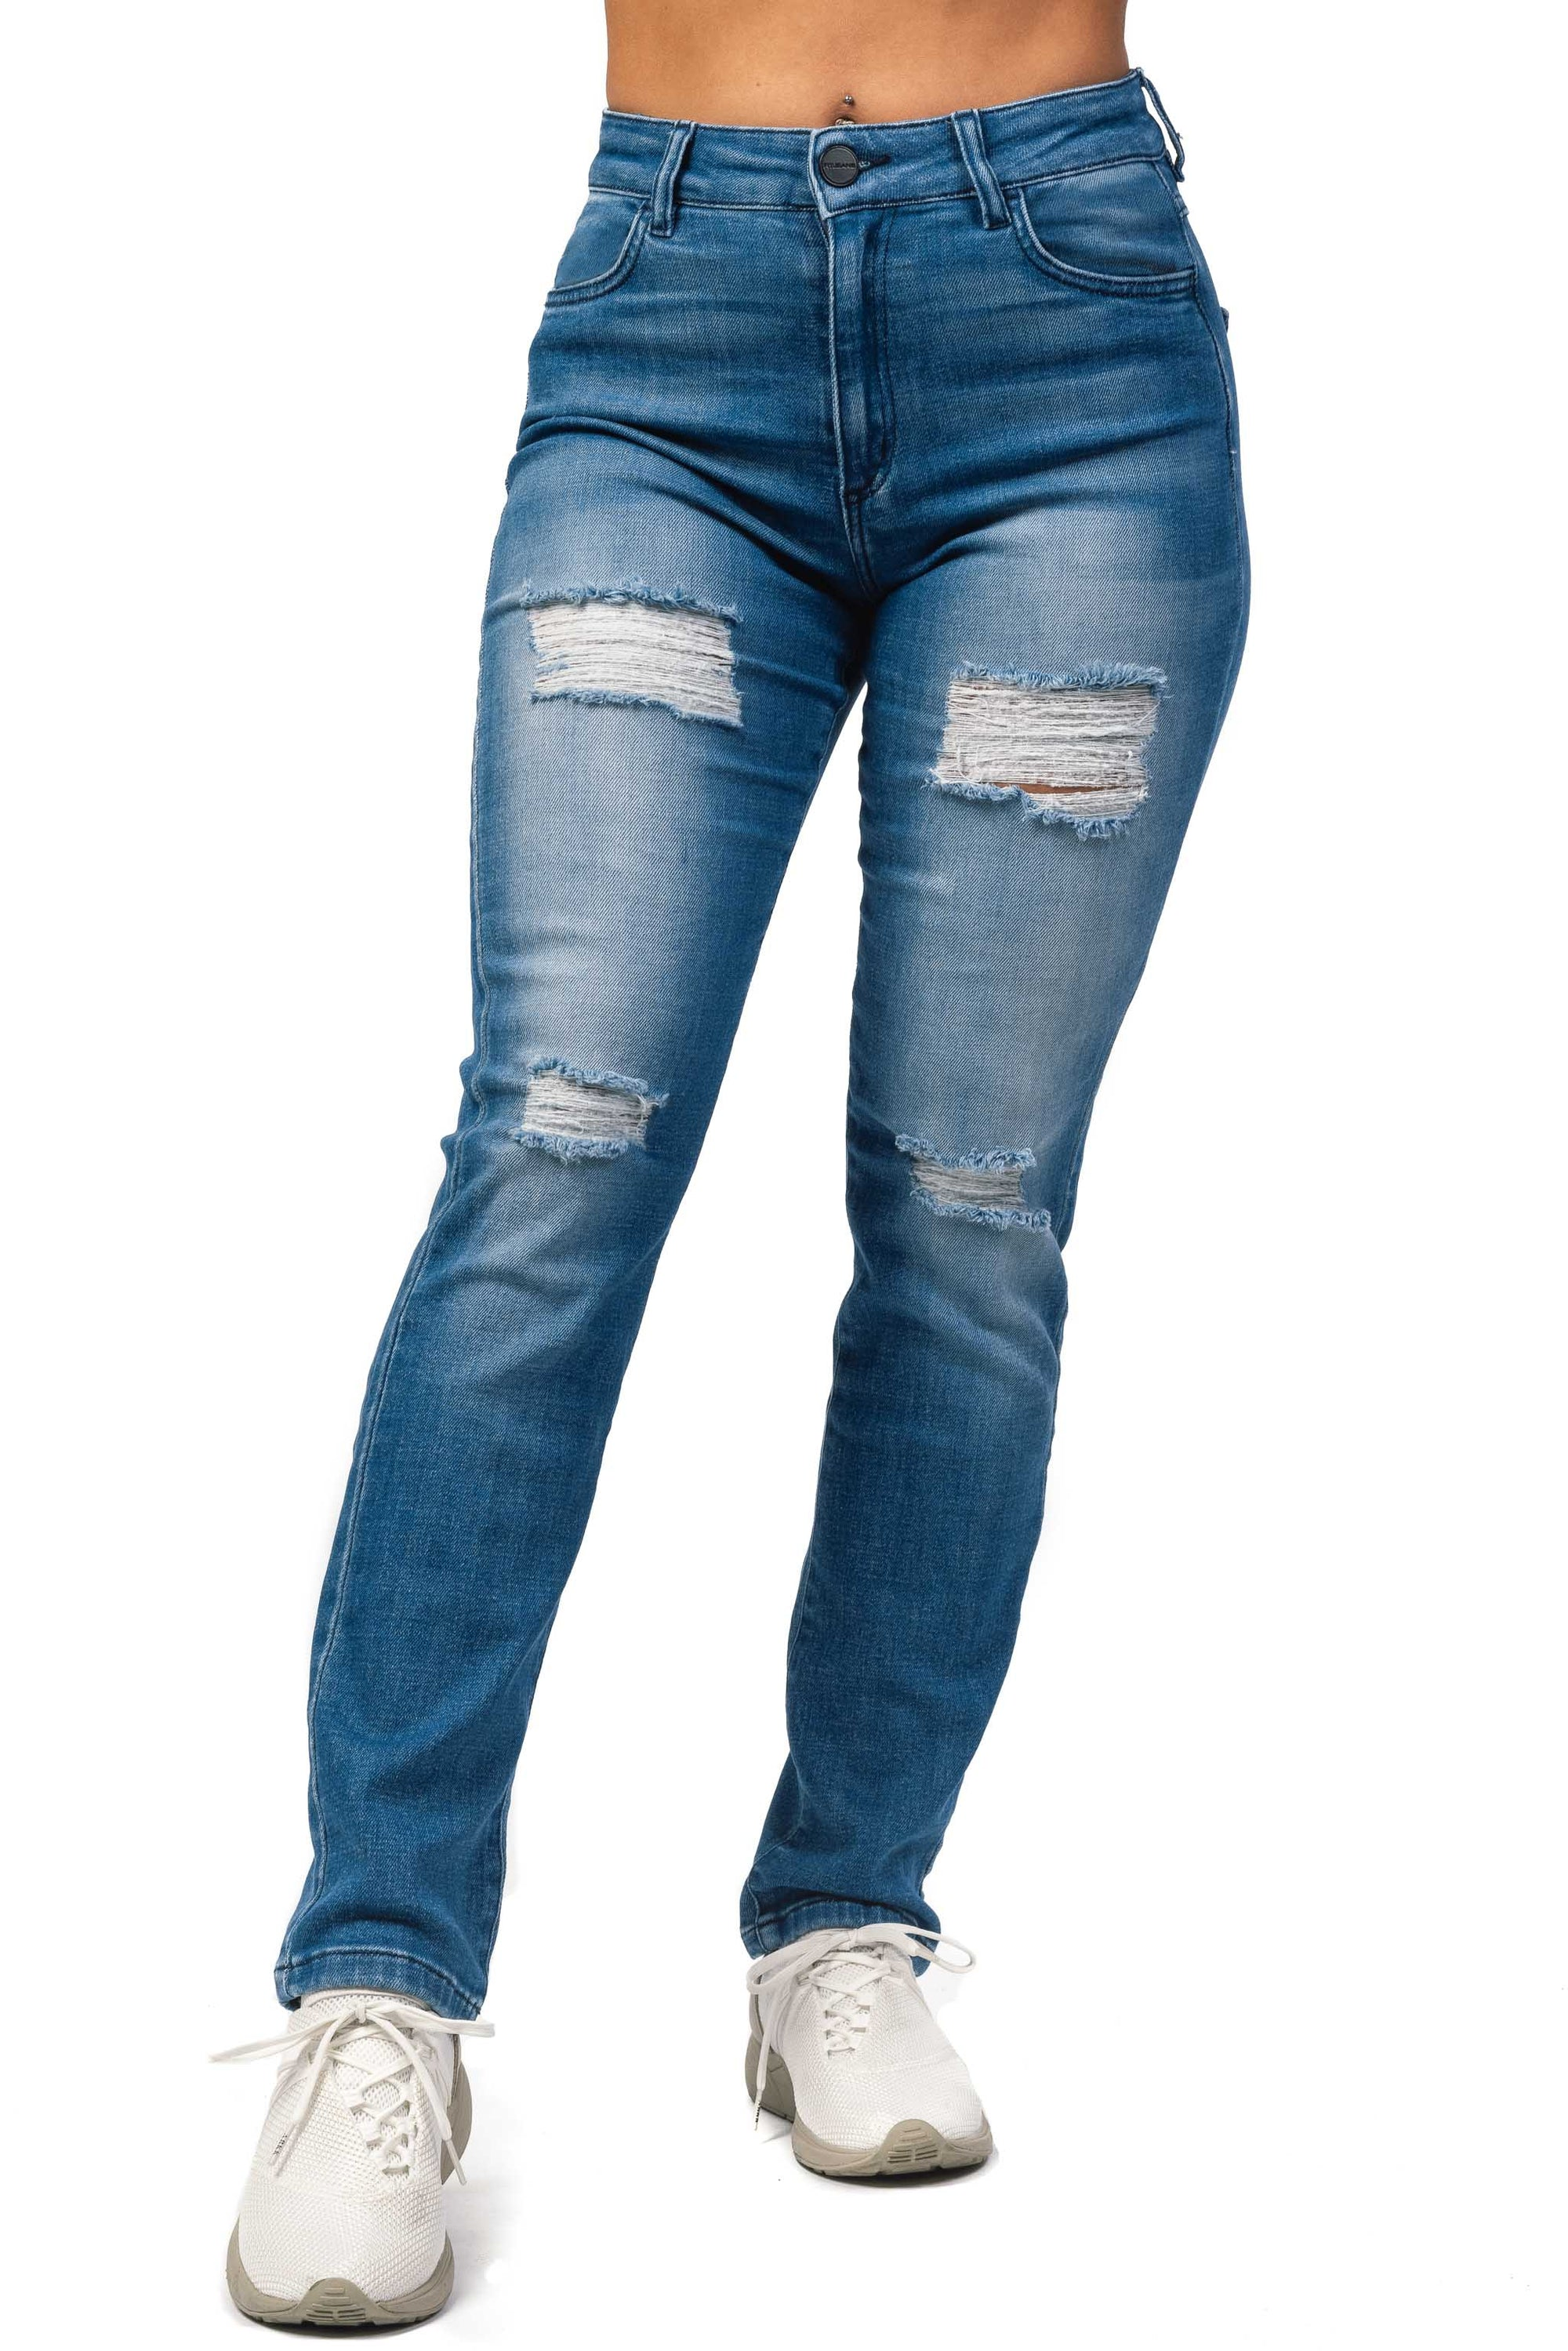 Womens High Waisted 4-Hole Mom Fitjeans - Azure Blue